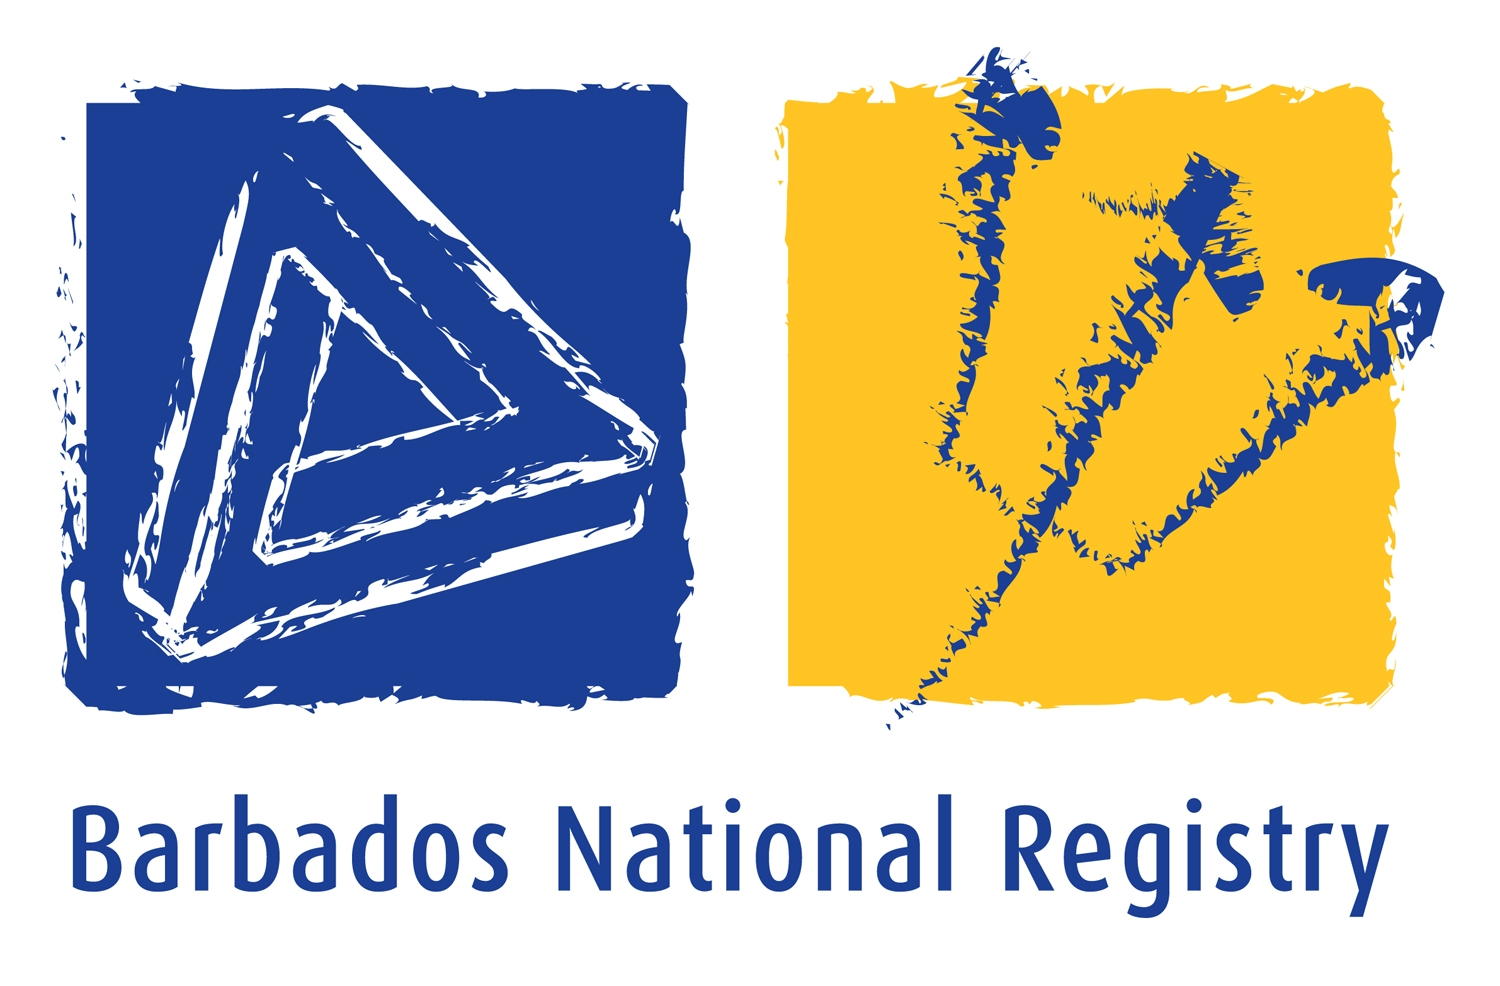 The Barbados National Registry for Non-Communicable Diseases